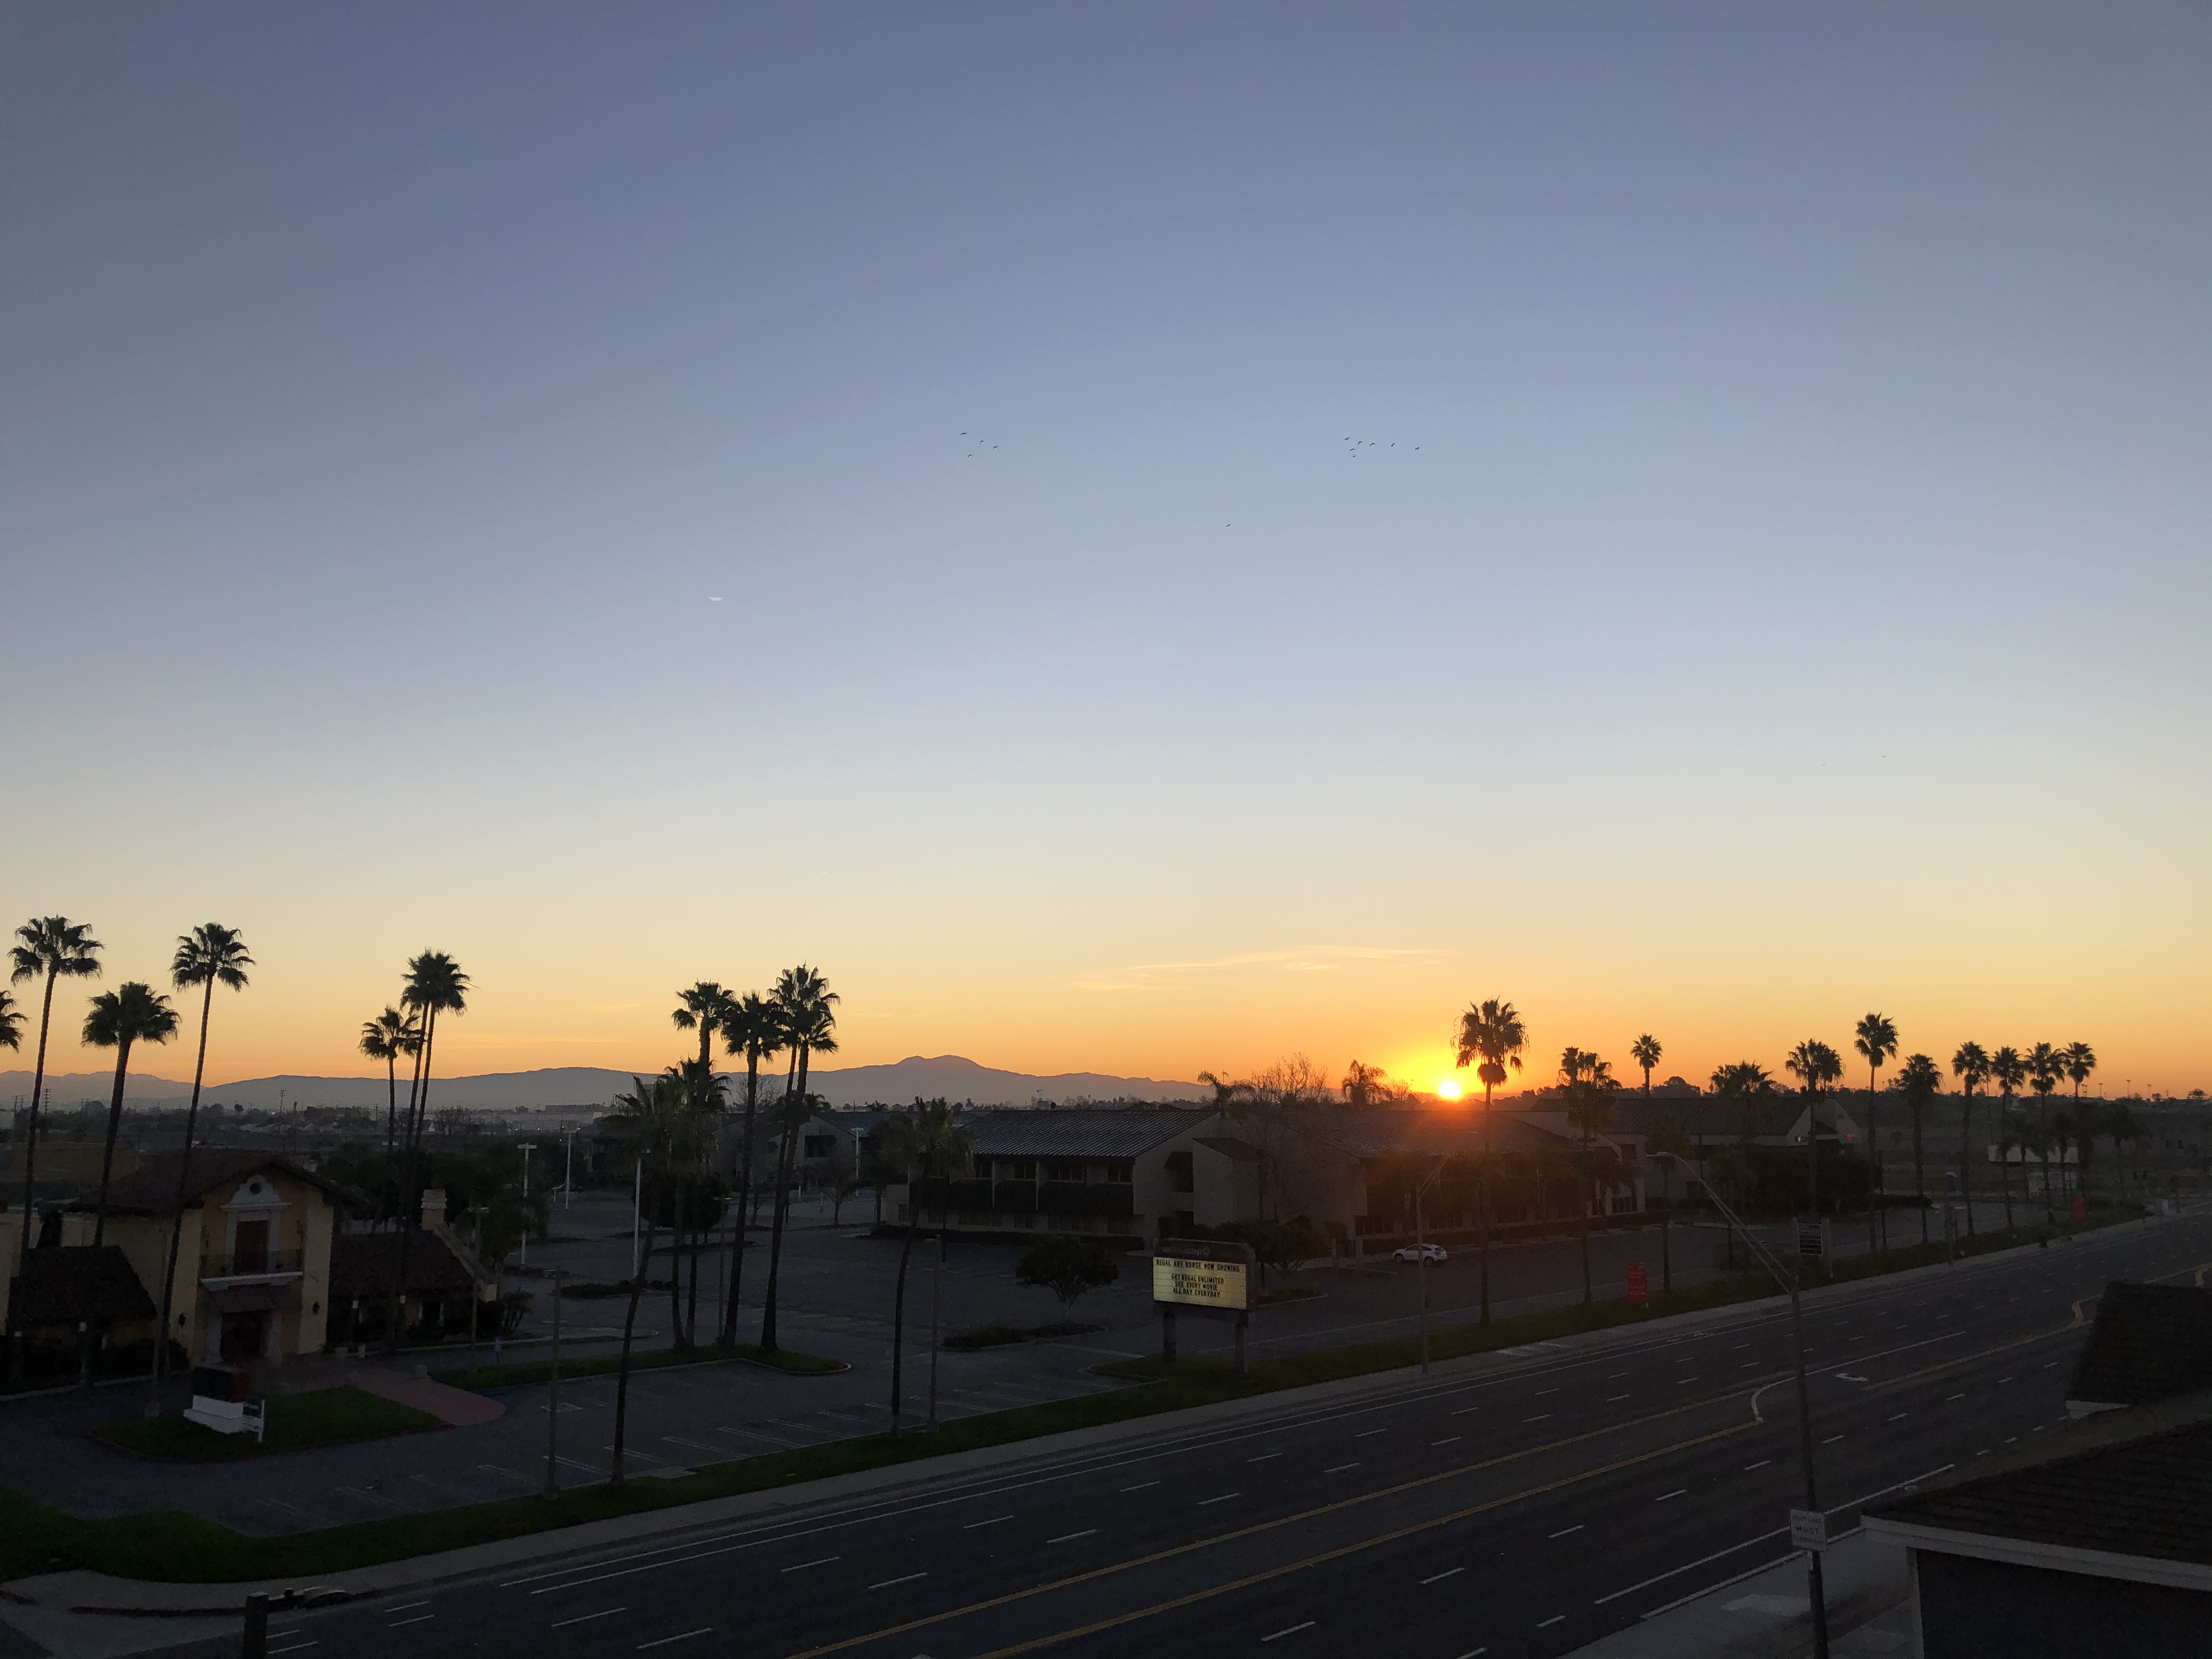 A sunrise over a quiet Long Beach on the following day. It was cold as hell during the night so I woke up at 6:00 to go get hot chocolate and watch the sunrise from a parking structure.